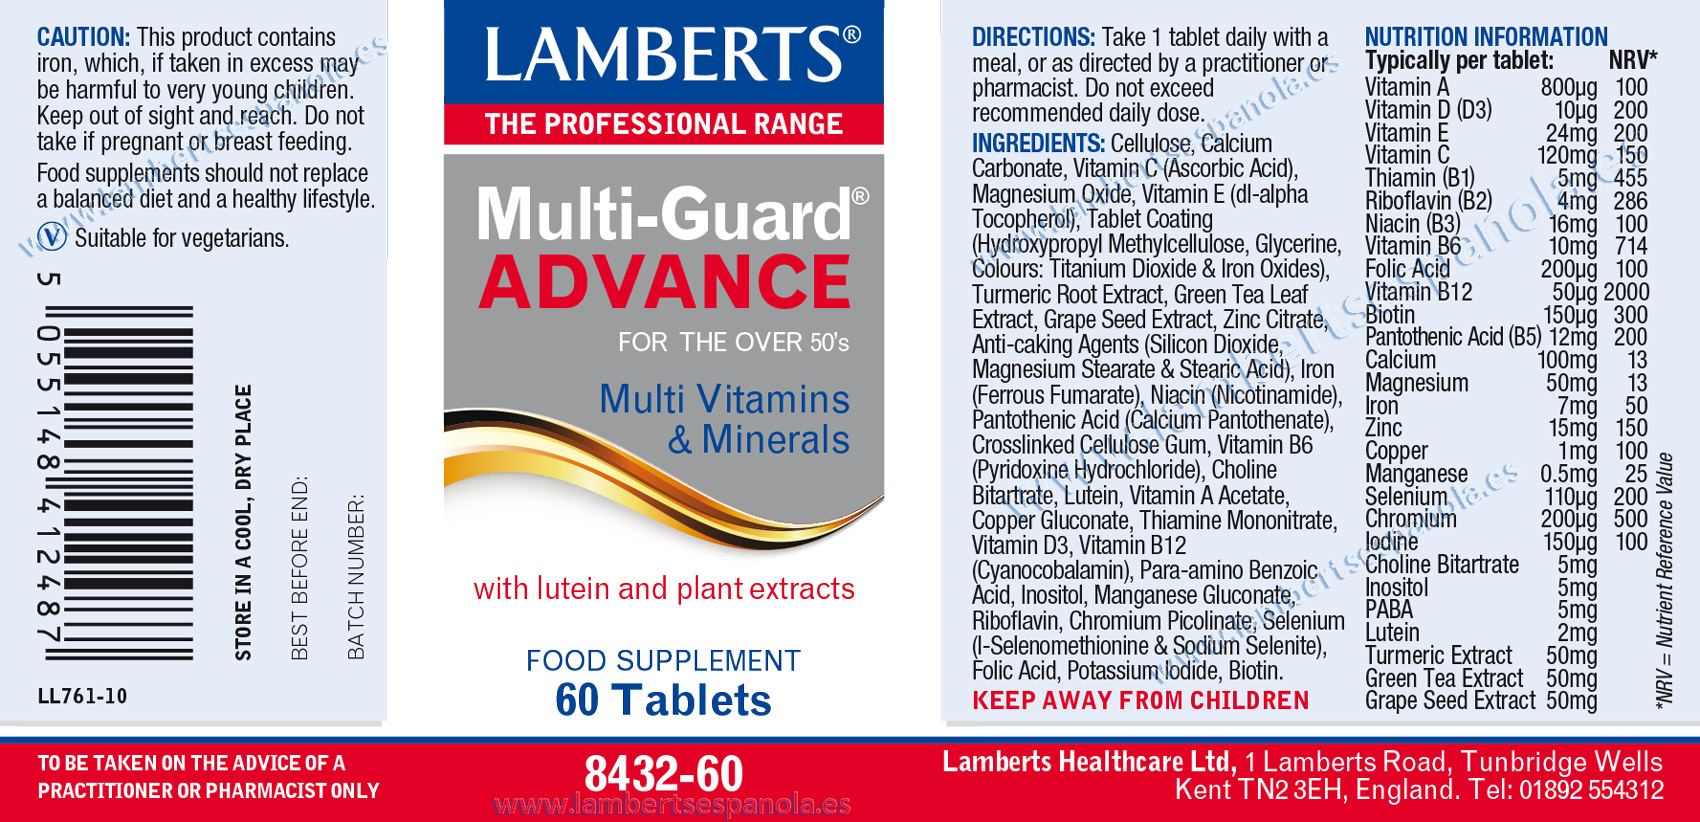 label of Multi-GuardAdvance by Lamberts with its properties and indications